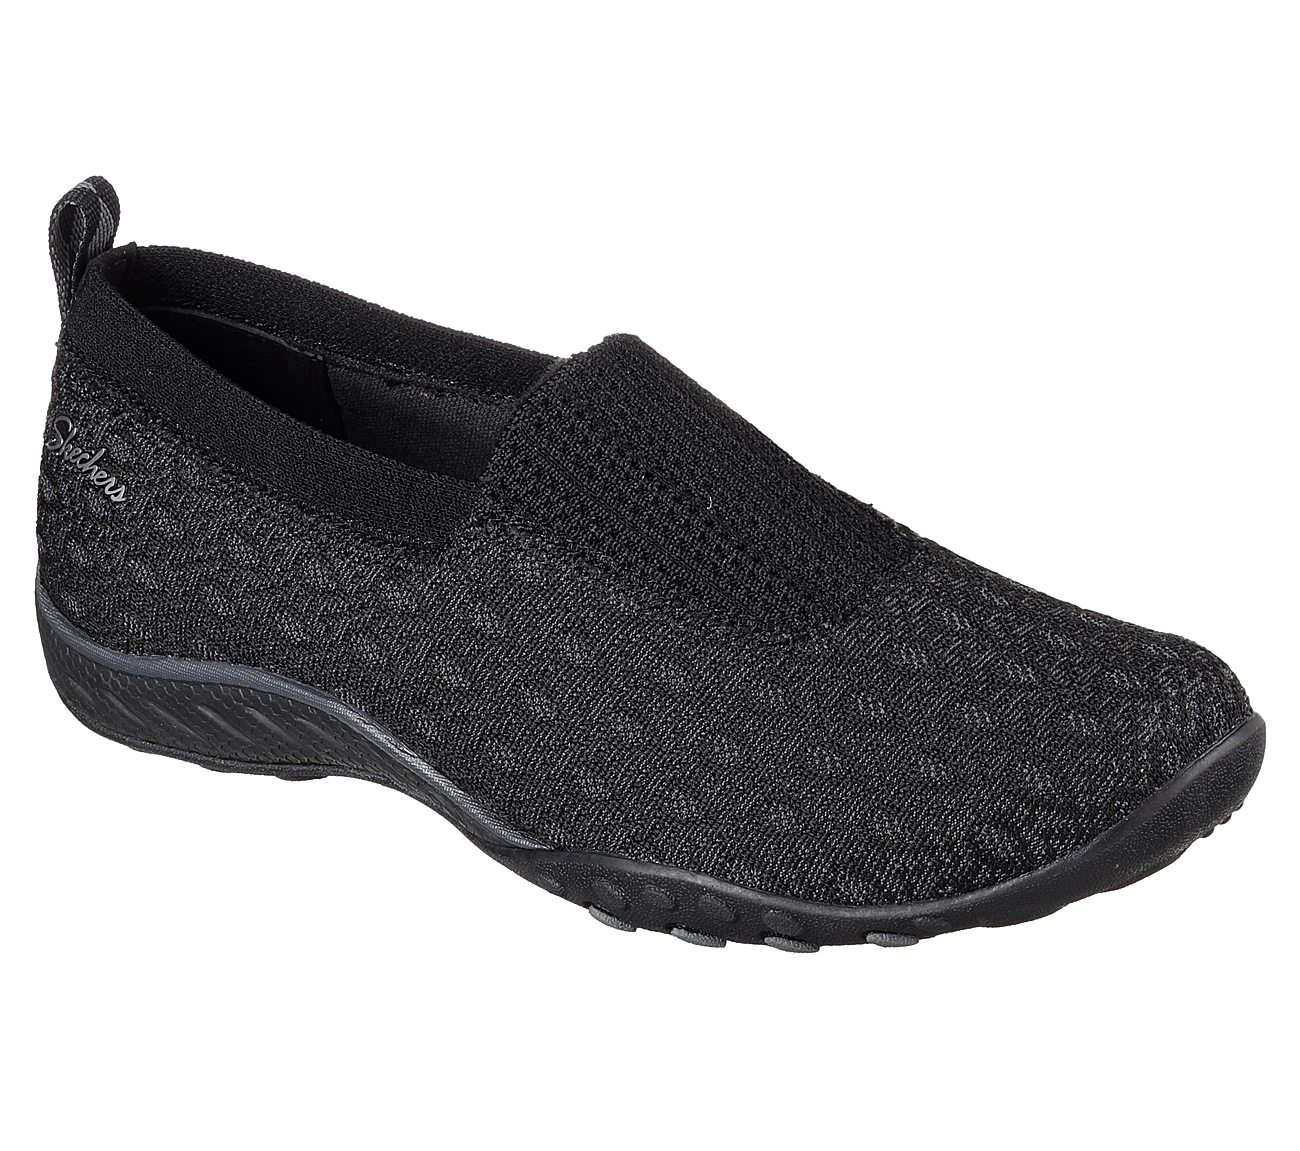 NEW SKECHERS WOMENS RELAXED FIT BREATHE EASY NICE N COOL SNEAKER